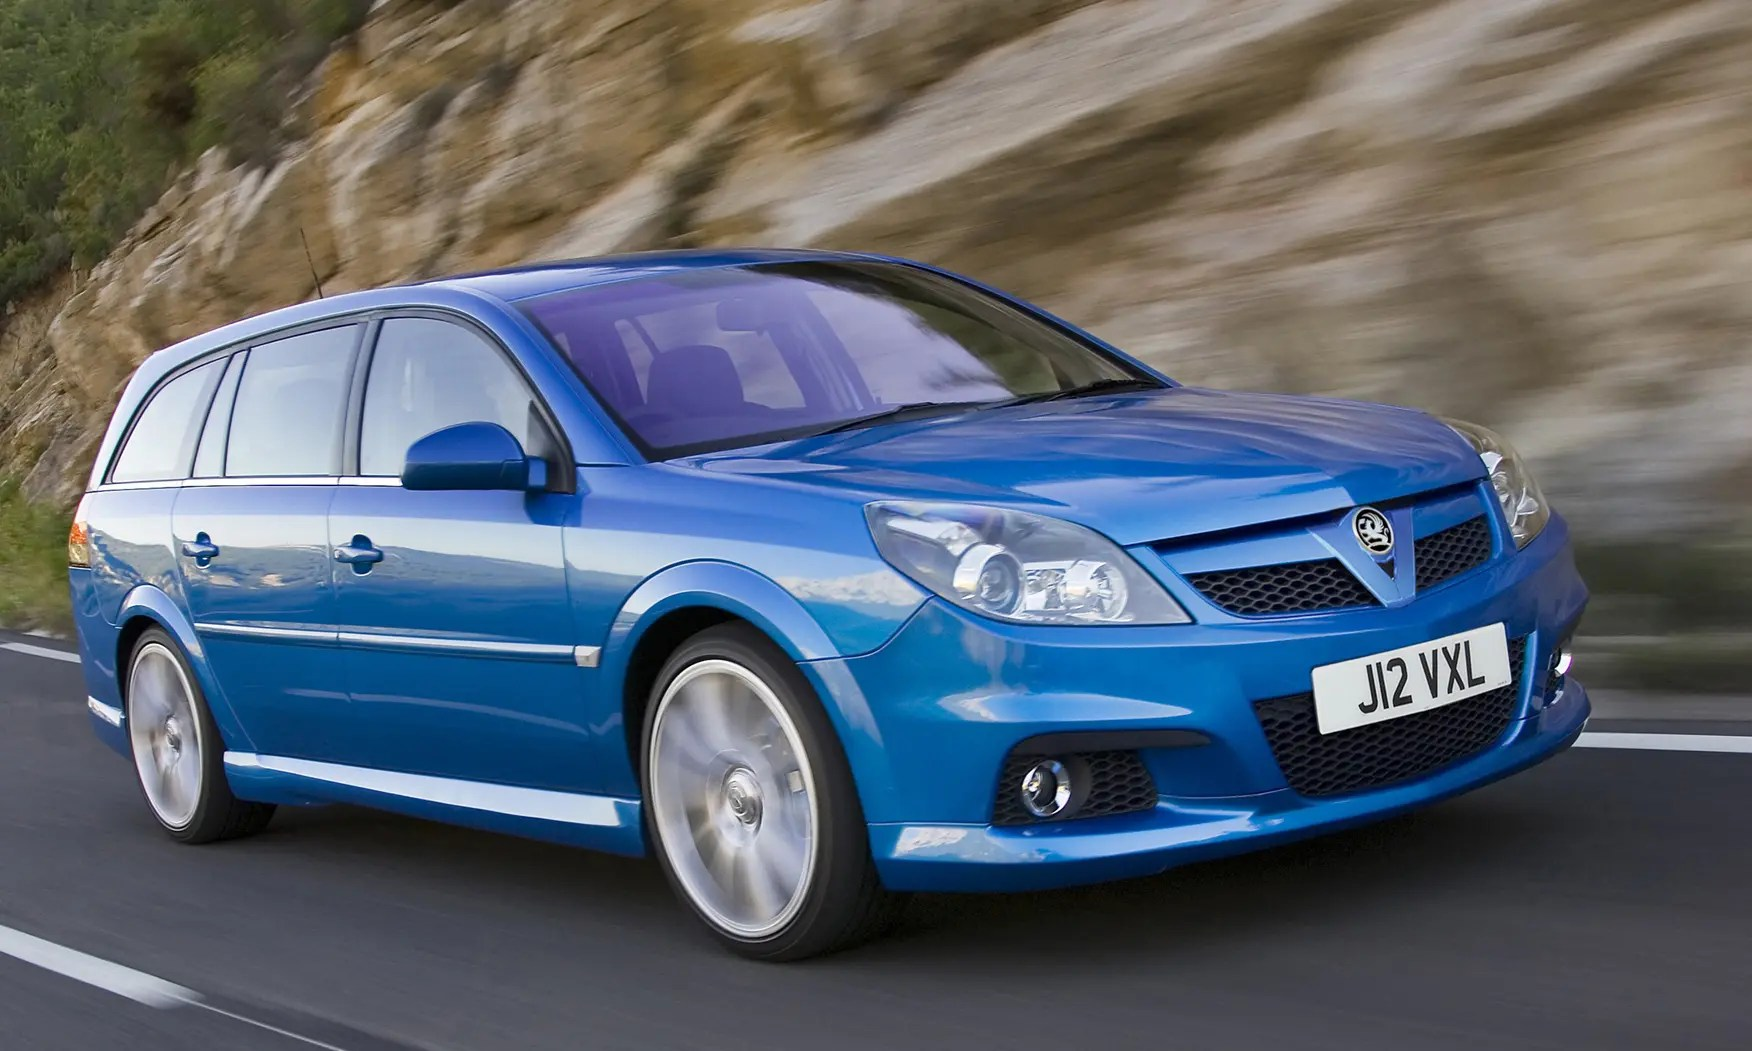 New Vauxhall Vectra Vauxhall Vectra Estate 2005 2008 Driving And Performance